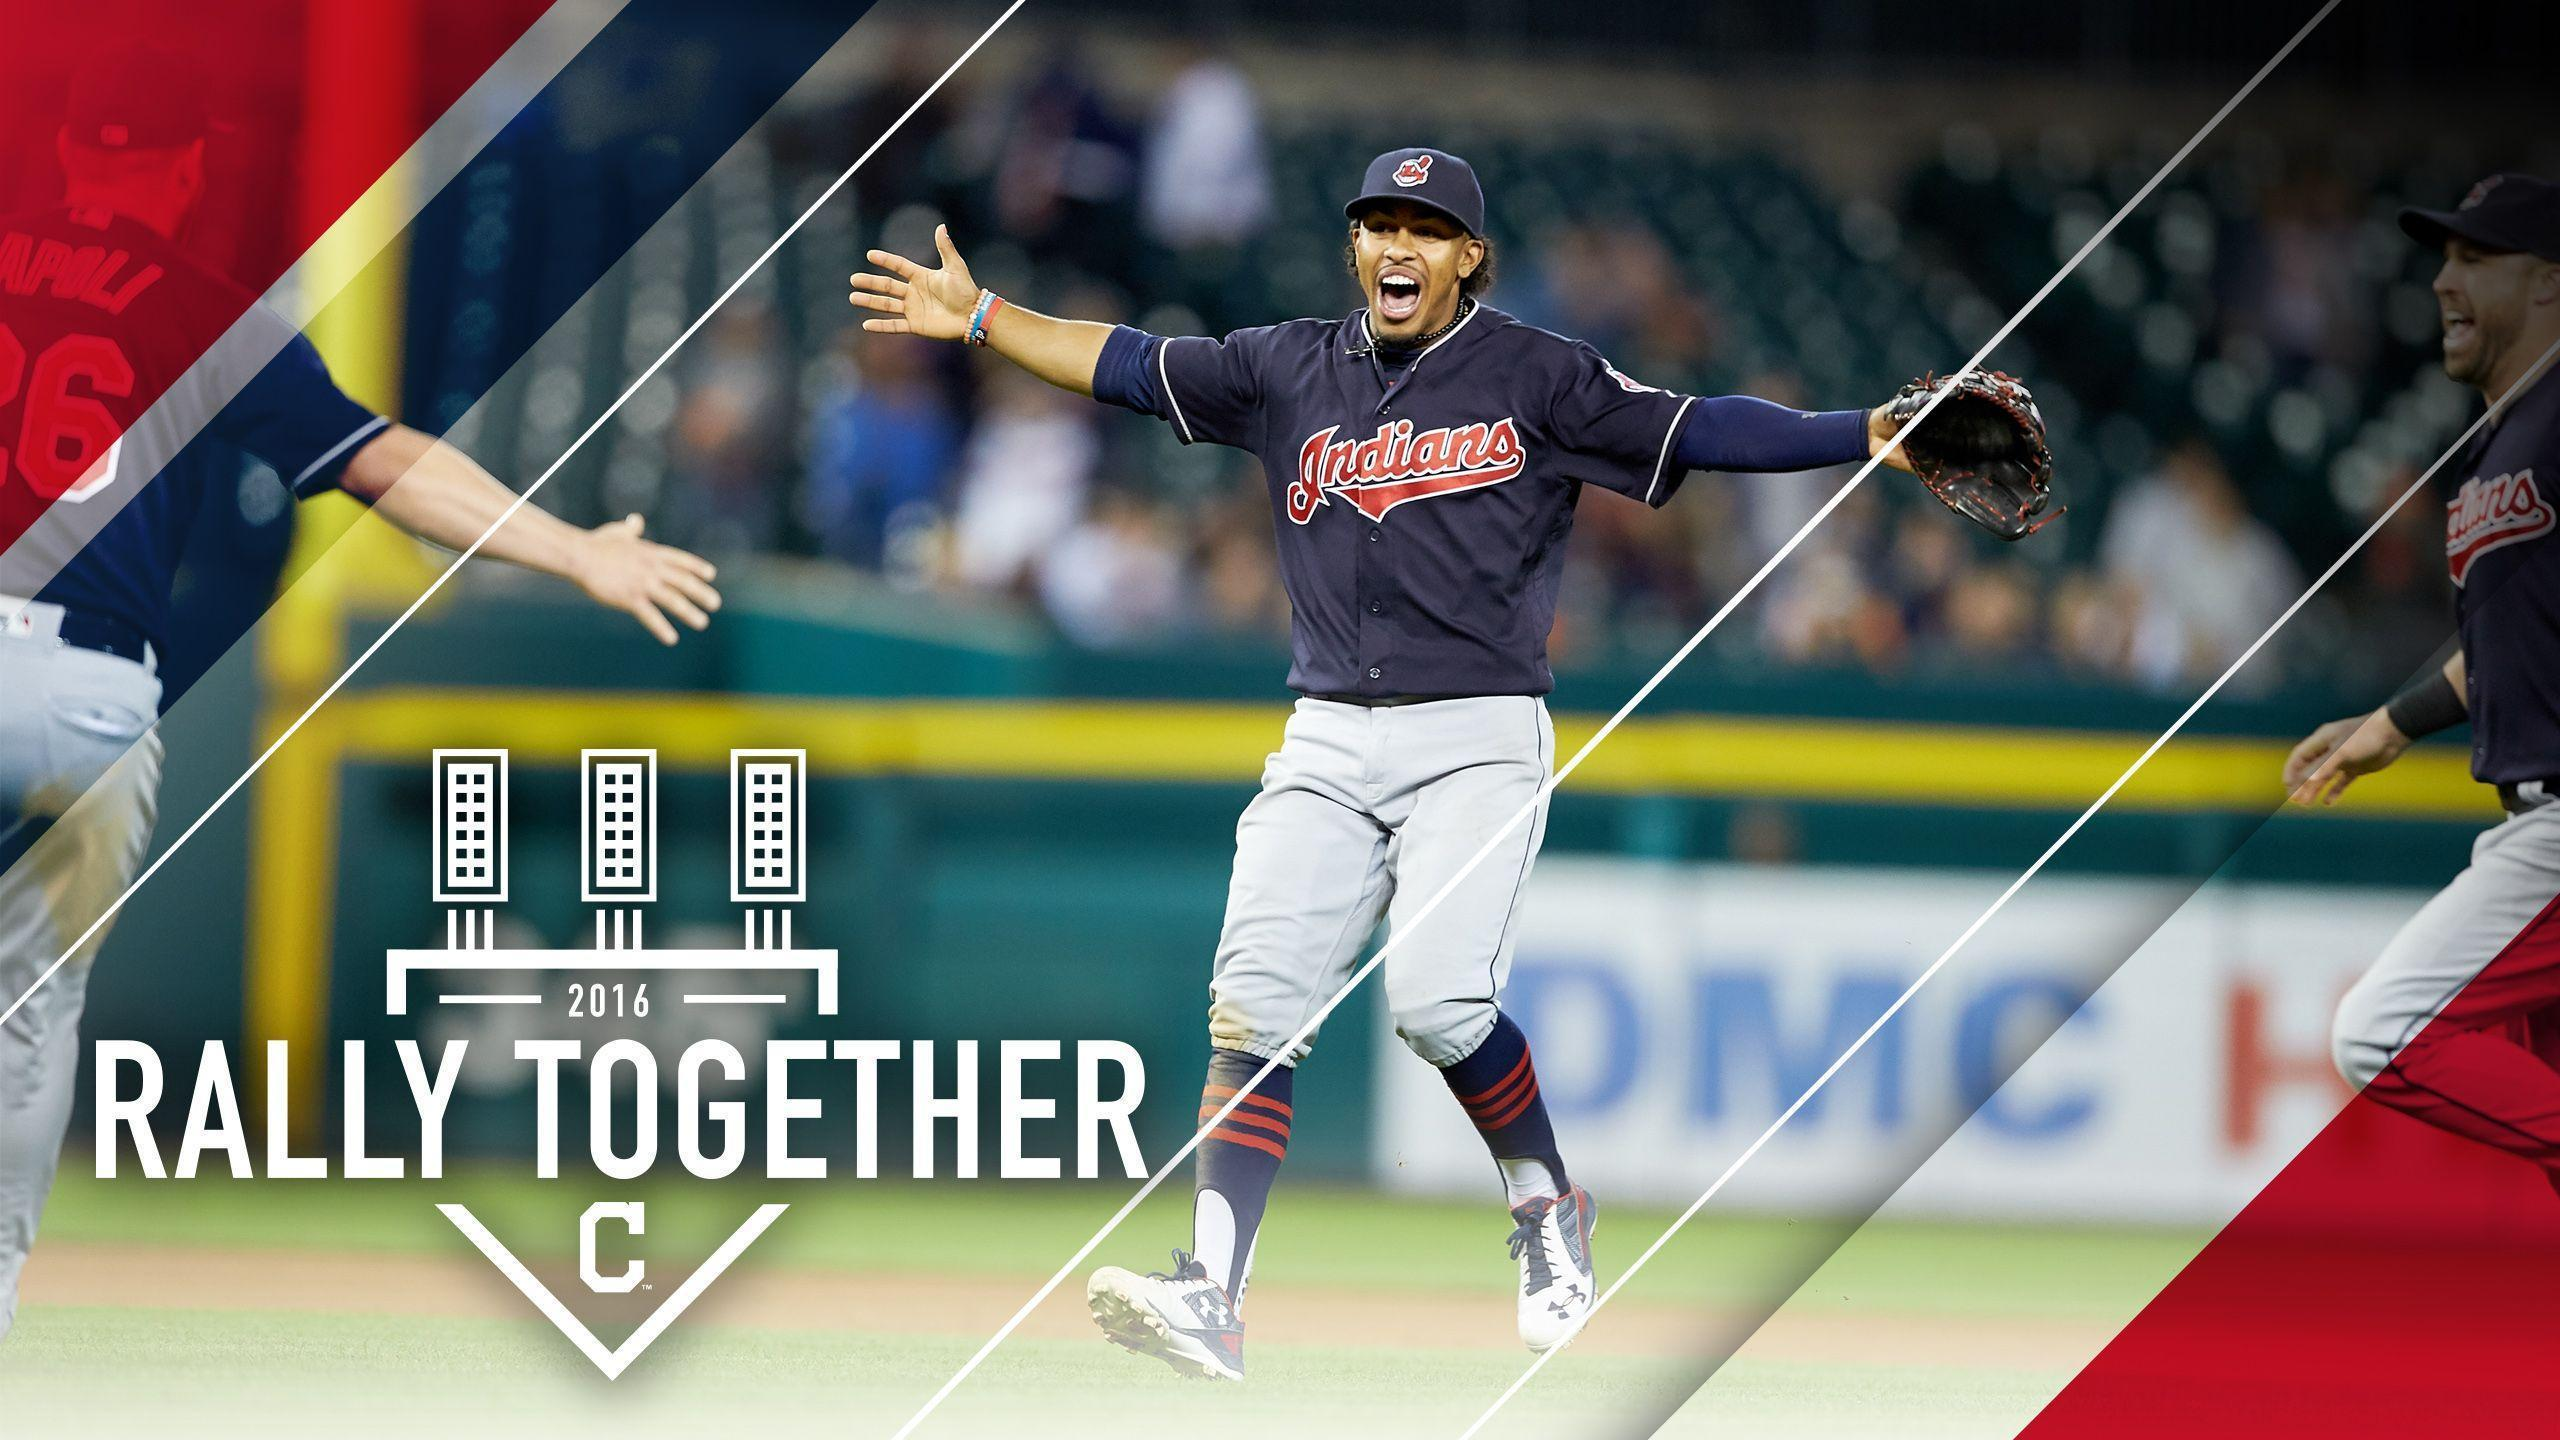 Wallpapers and Covers | Cleveland Indians